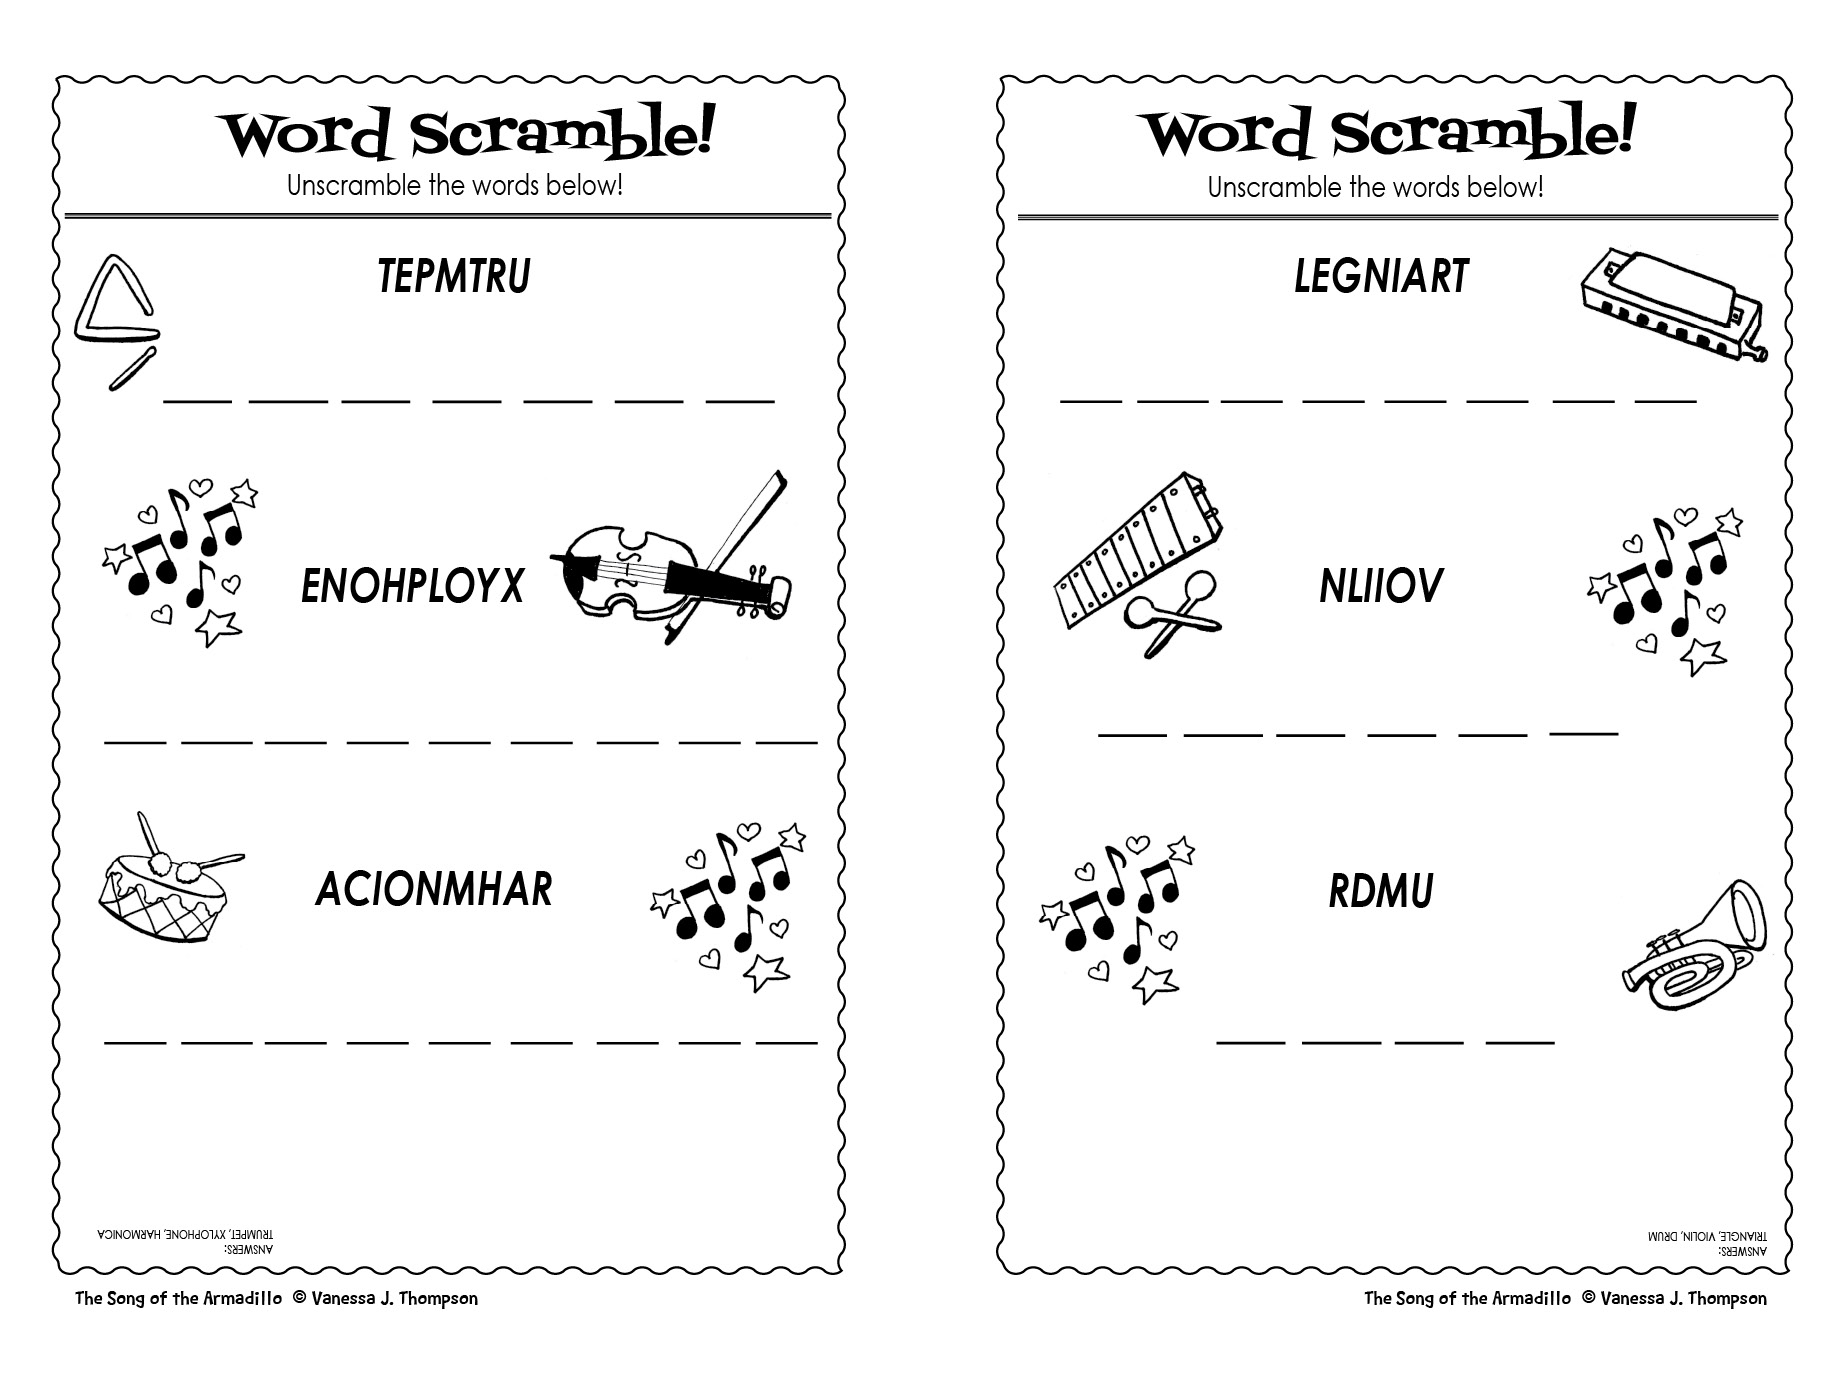 Word Scramble Activity